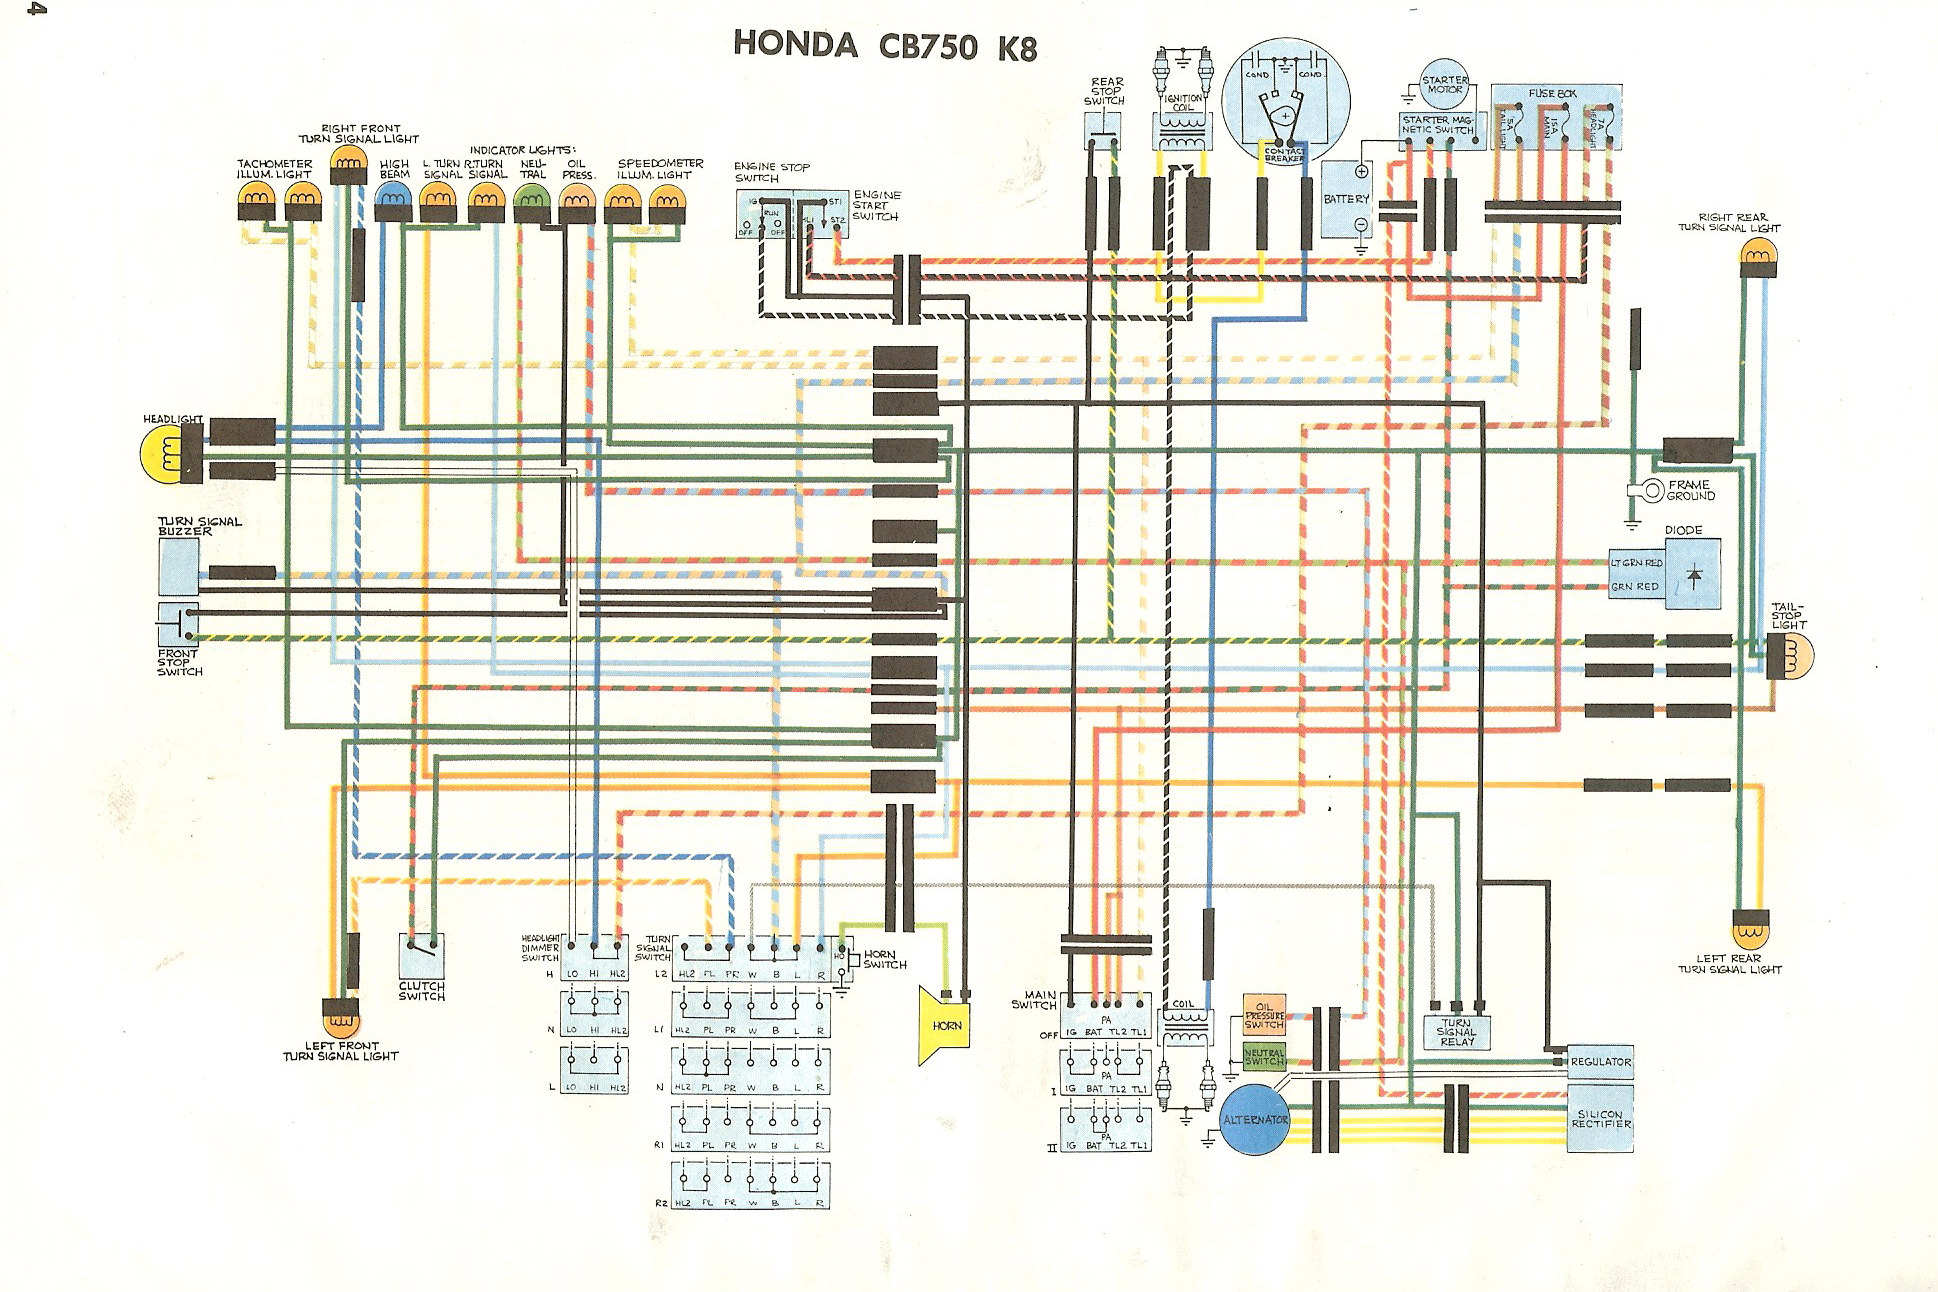 WD750K8 cb750k wiring diagram motorcycle ignition wiring diagram \u2022 wiring 1980 cb750 wiring harness at et-consult.org